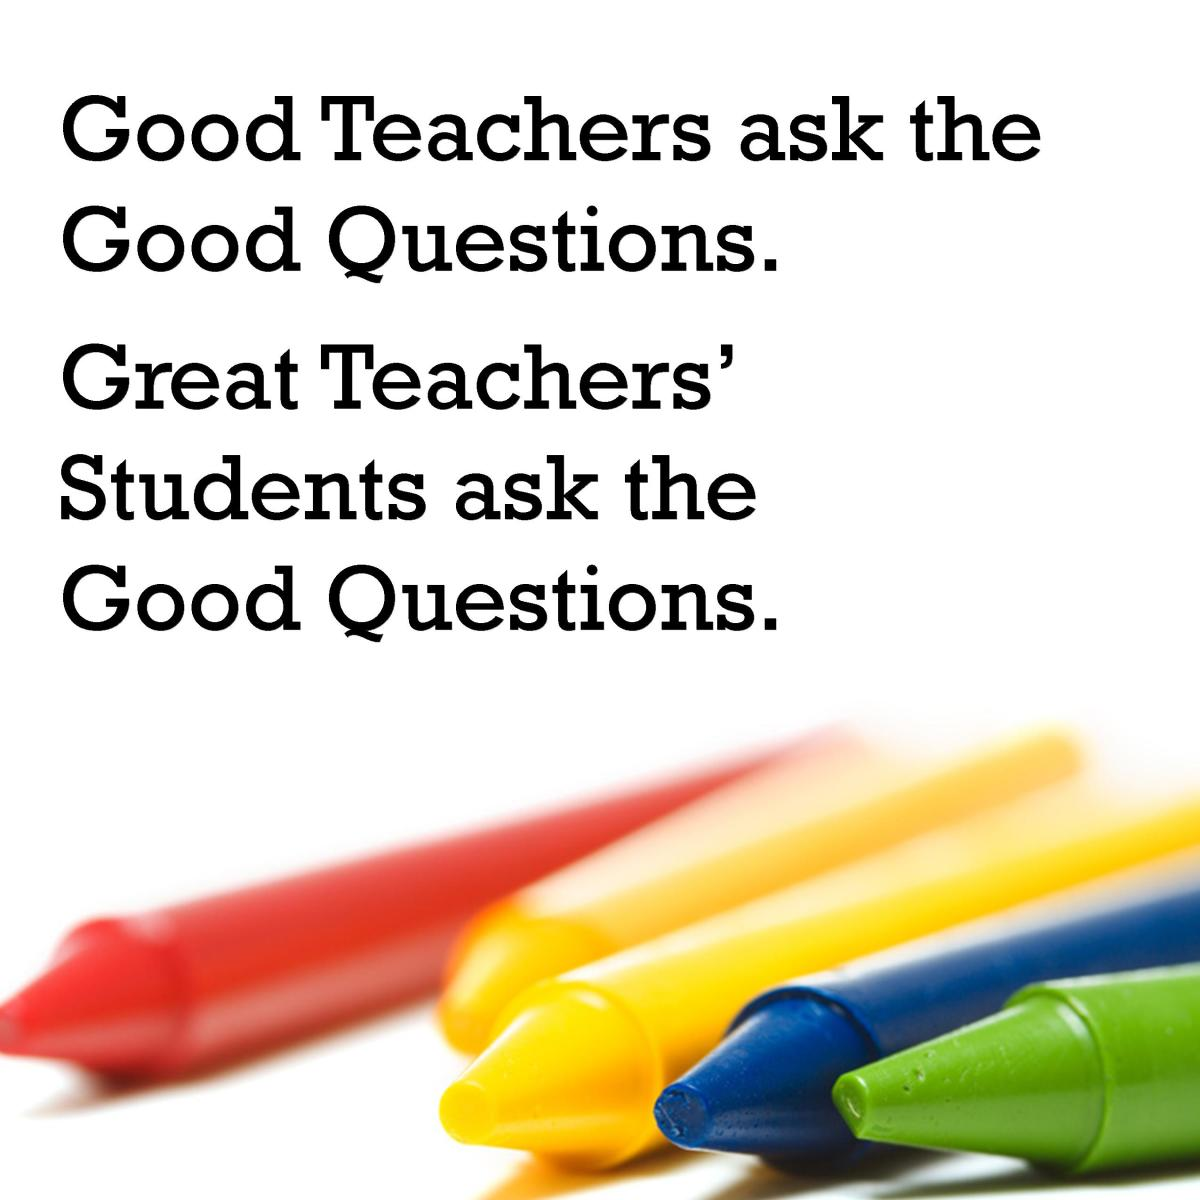 You can use a saying or quote about good teachers to tell your teacher why he or she is good.